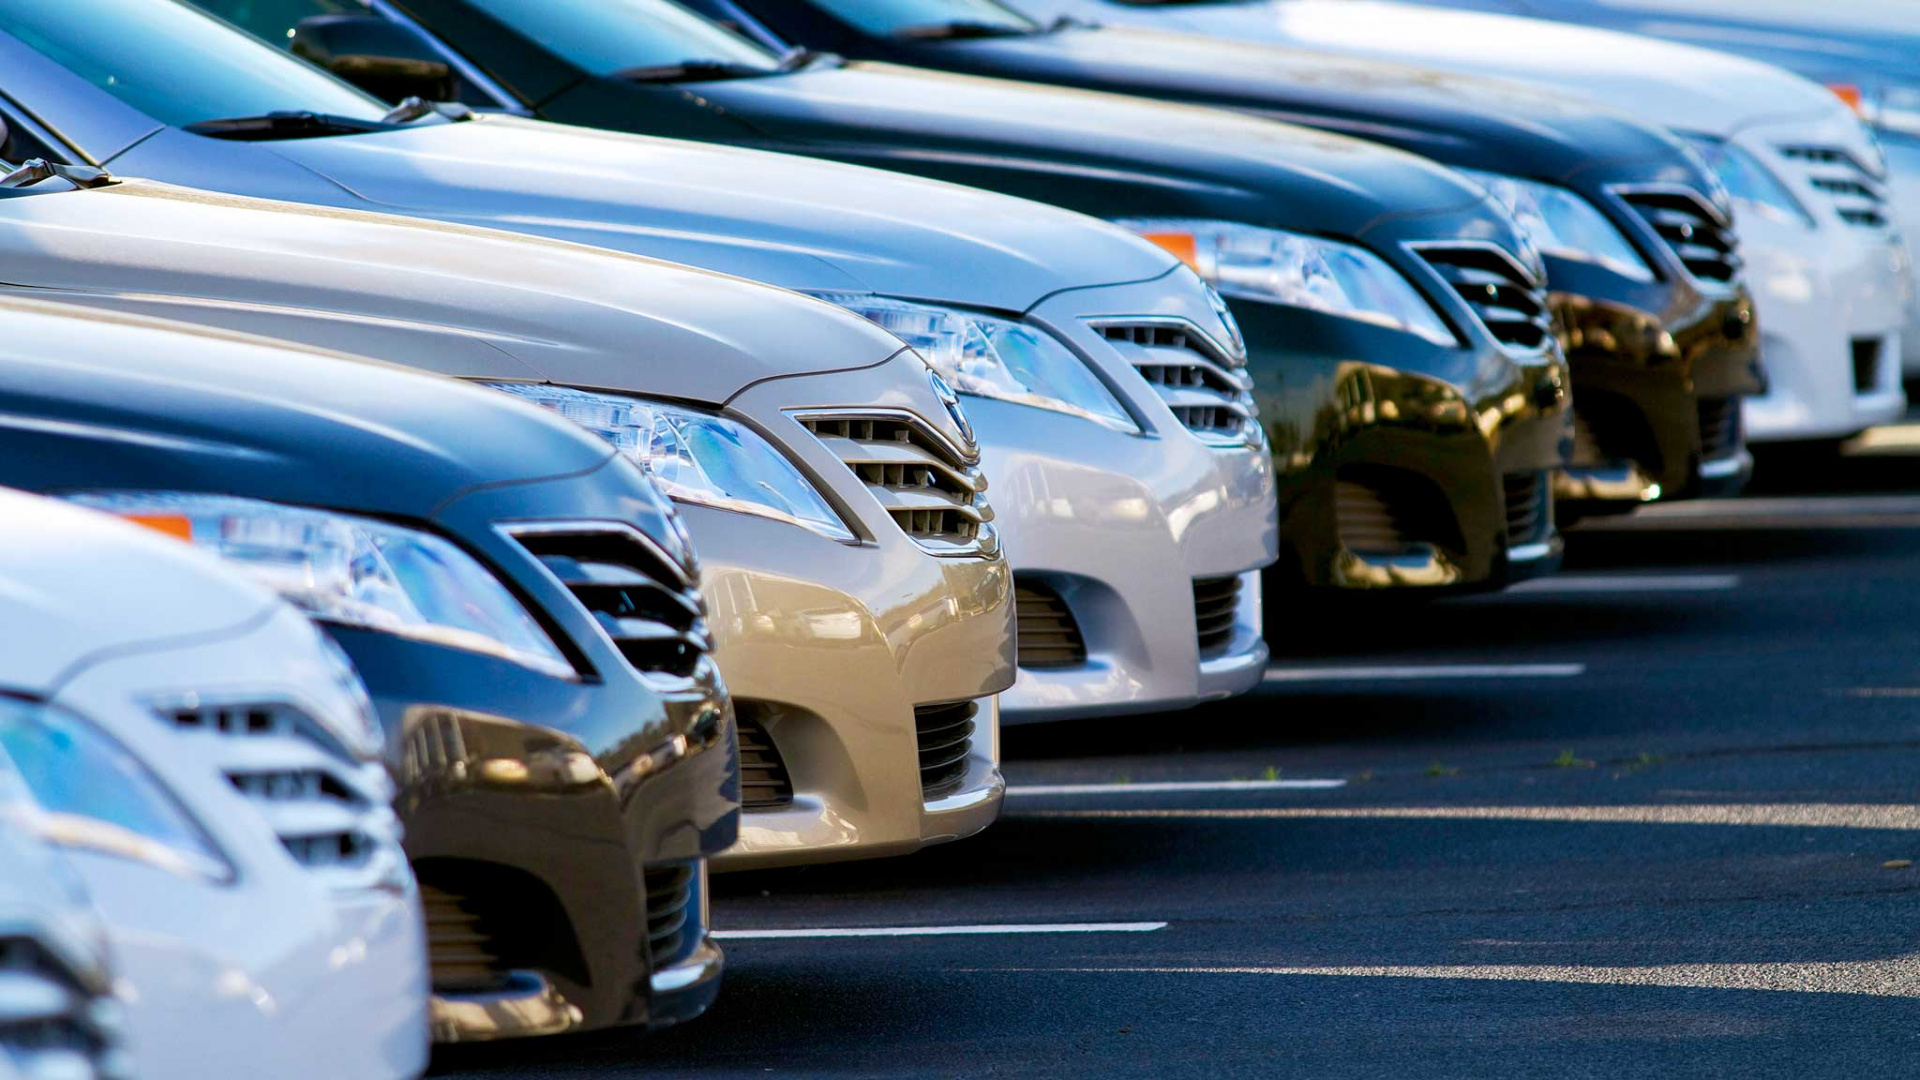 U.S. Car Sales Plummeted in September: Single Outcome for Dual Stock Action